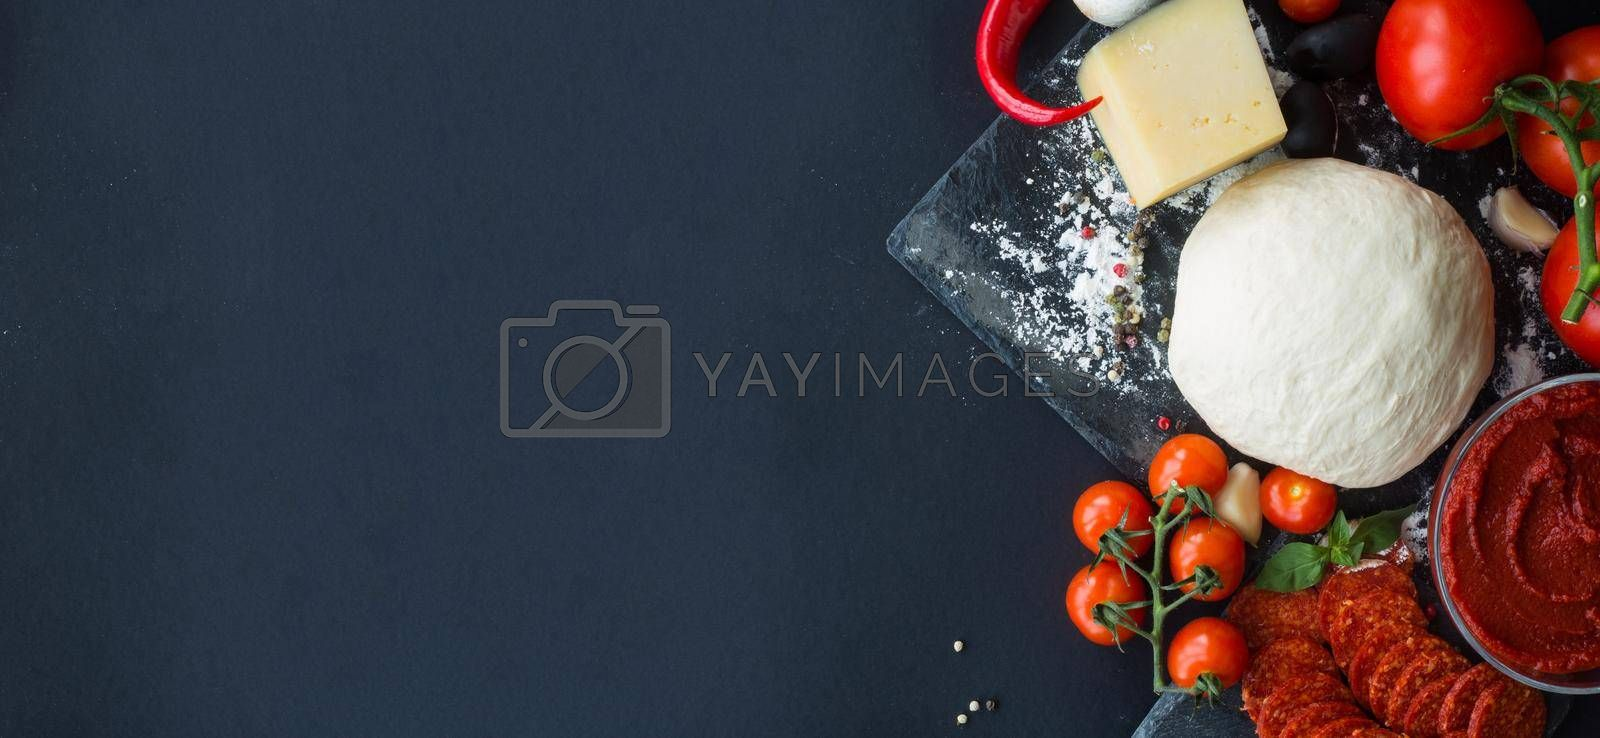 Raw dough for pizza with ingredients and spices on black table background with copy space for text